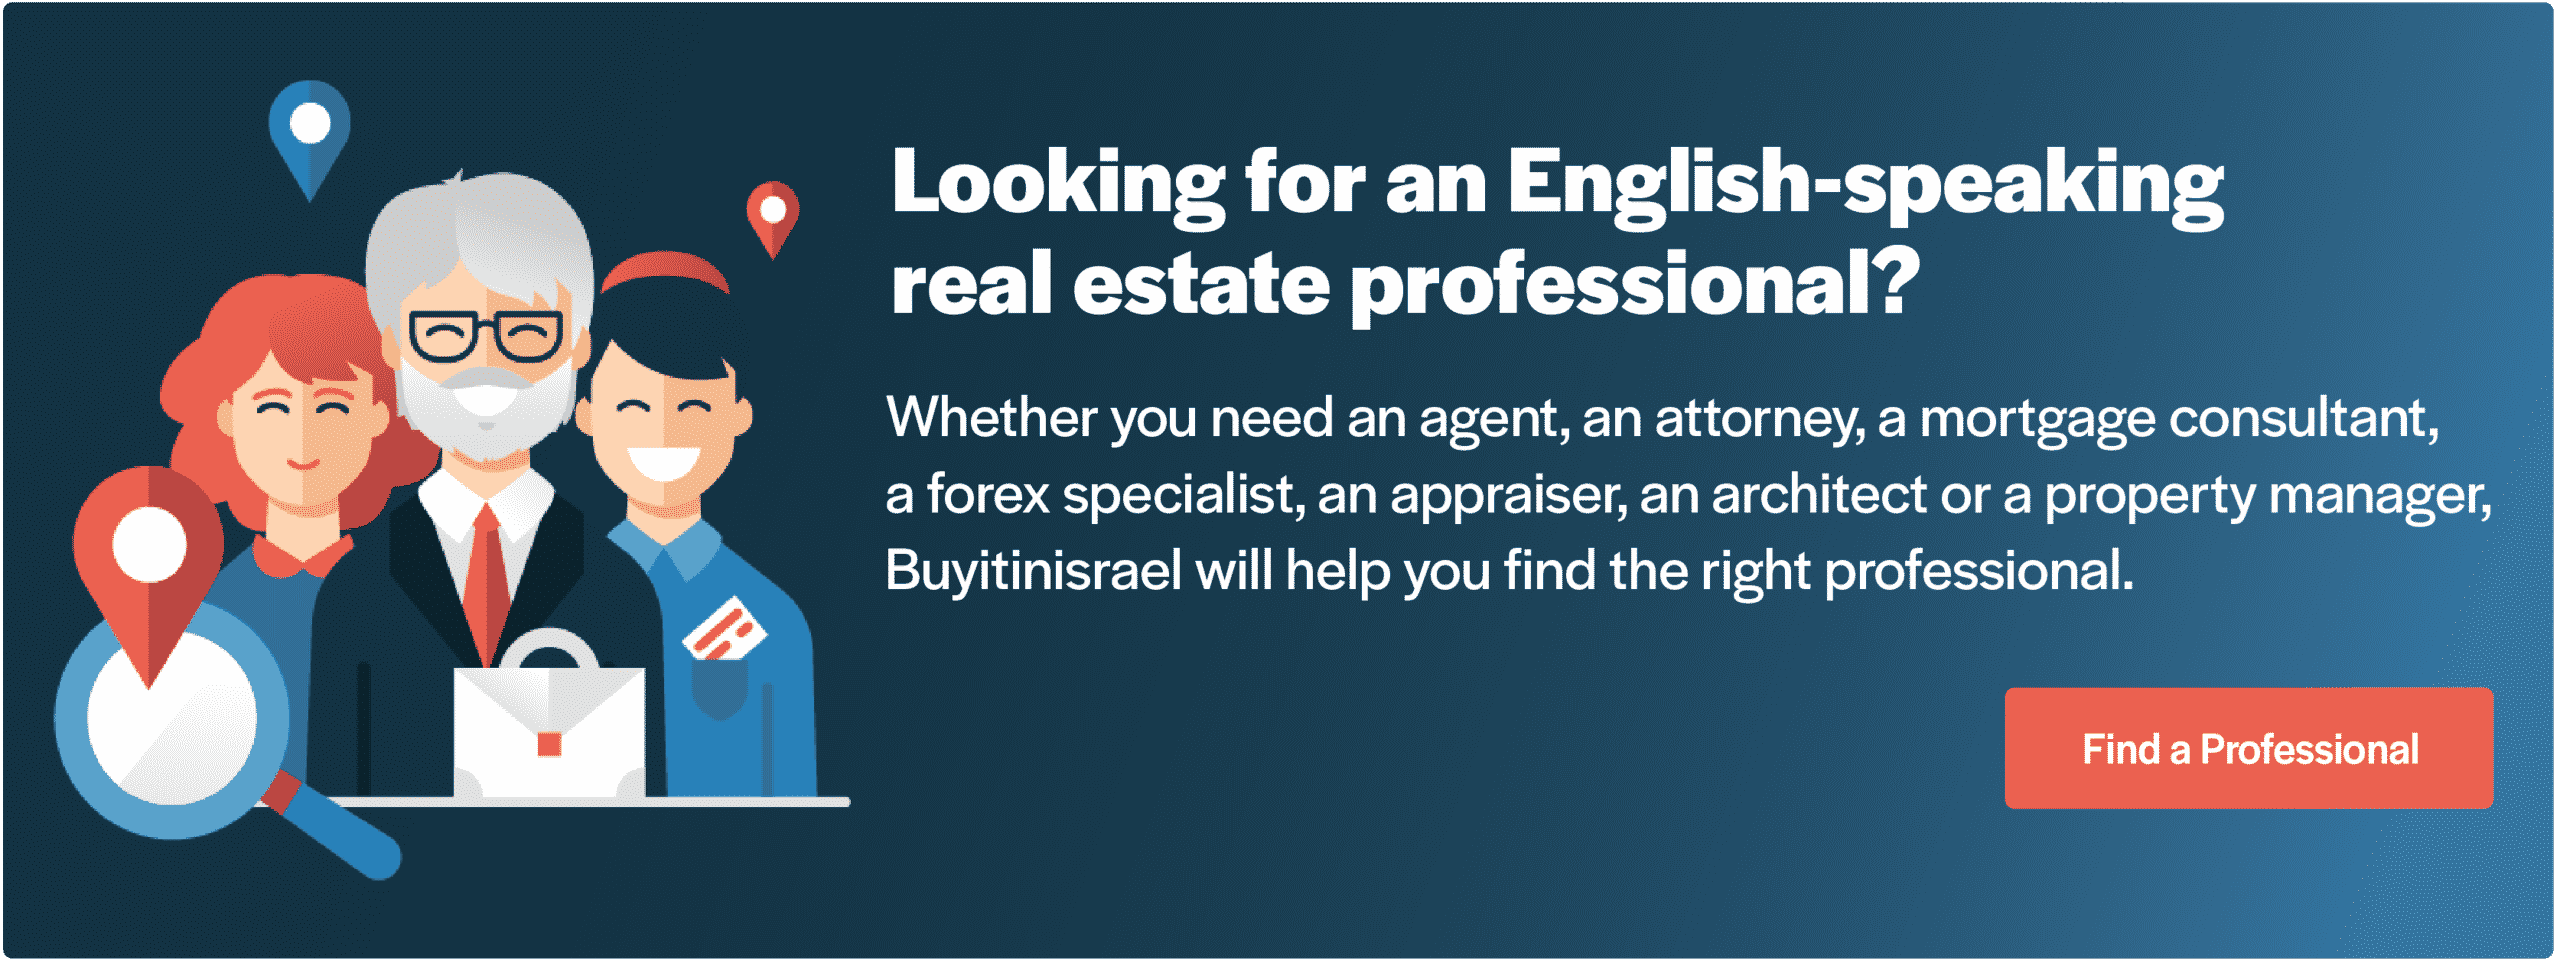 find a real estate professional in Israel